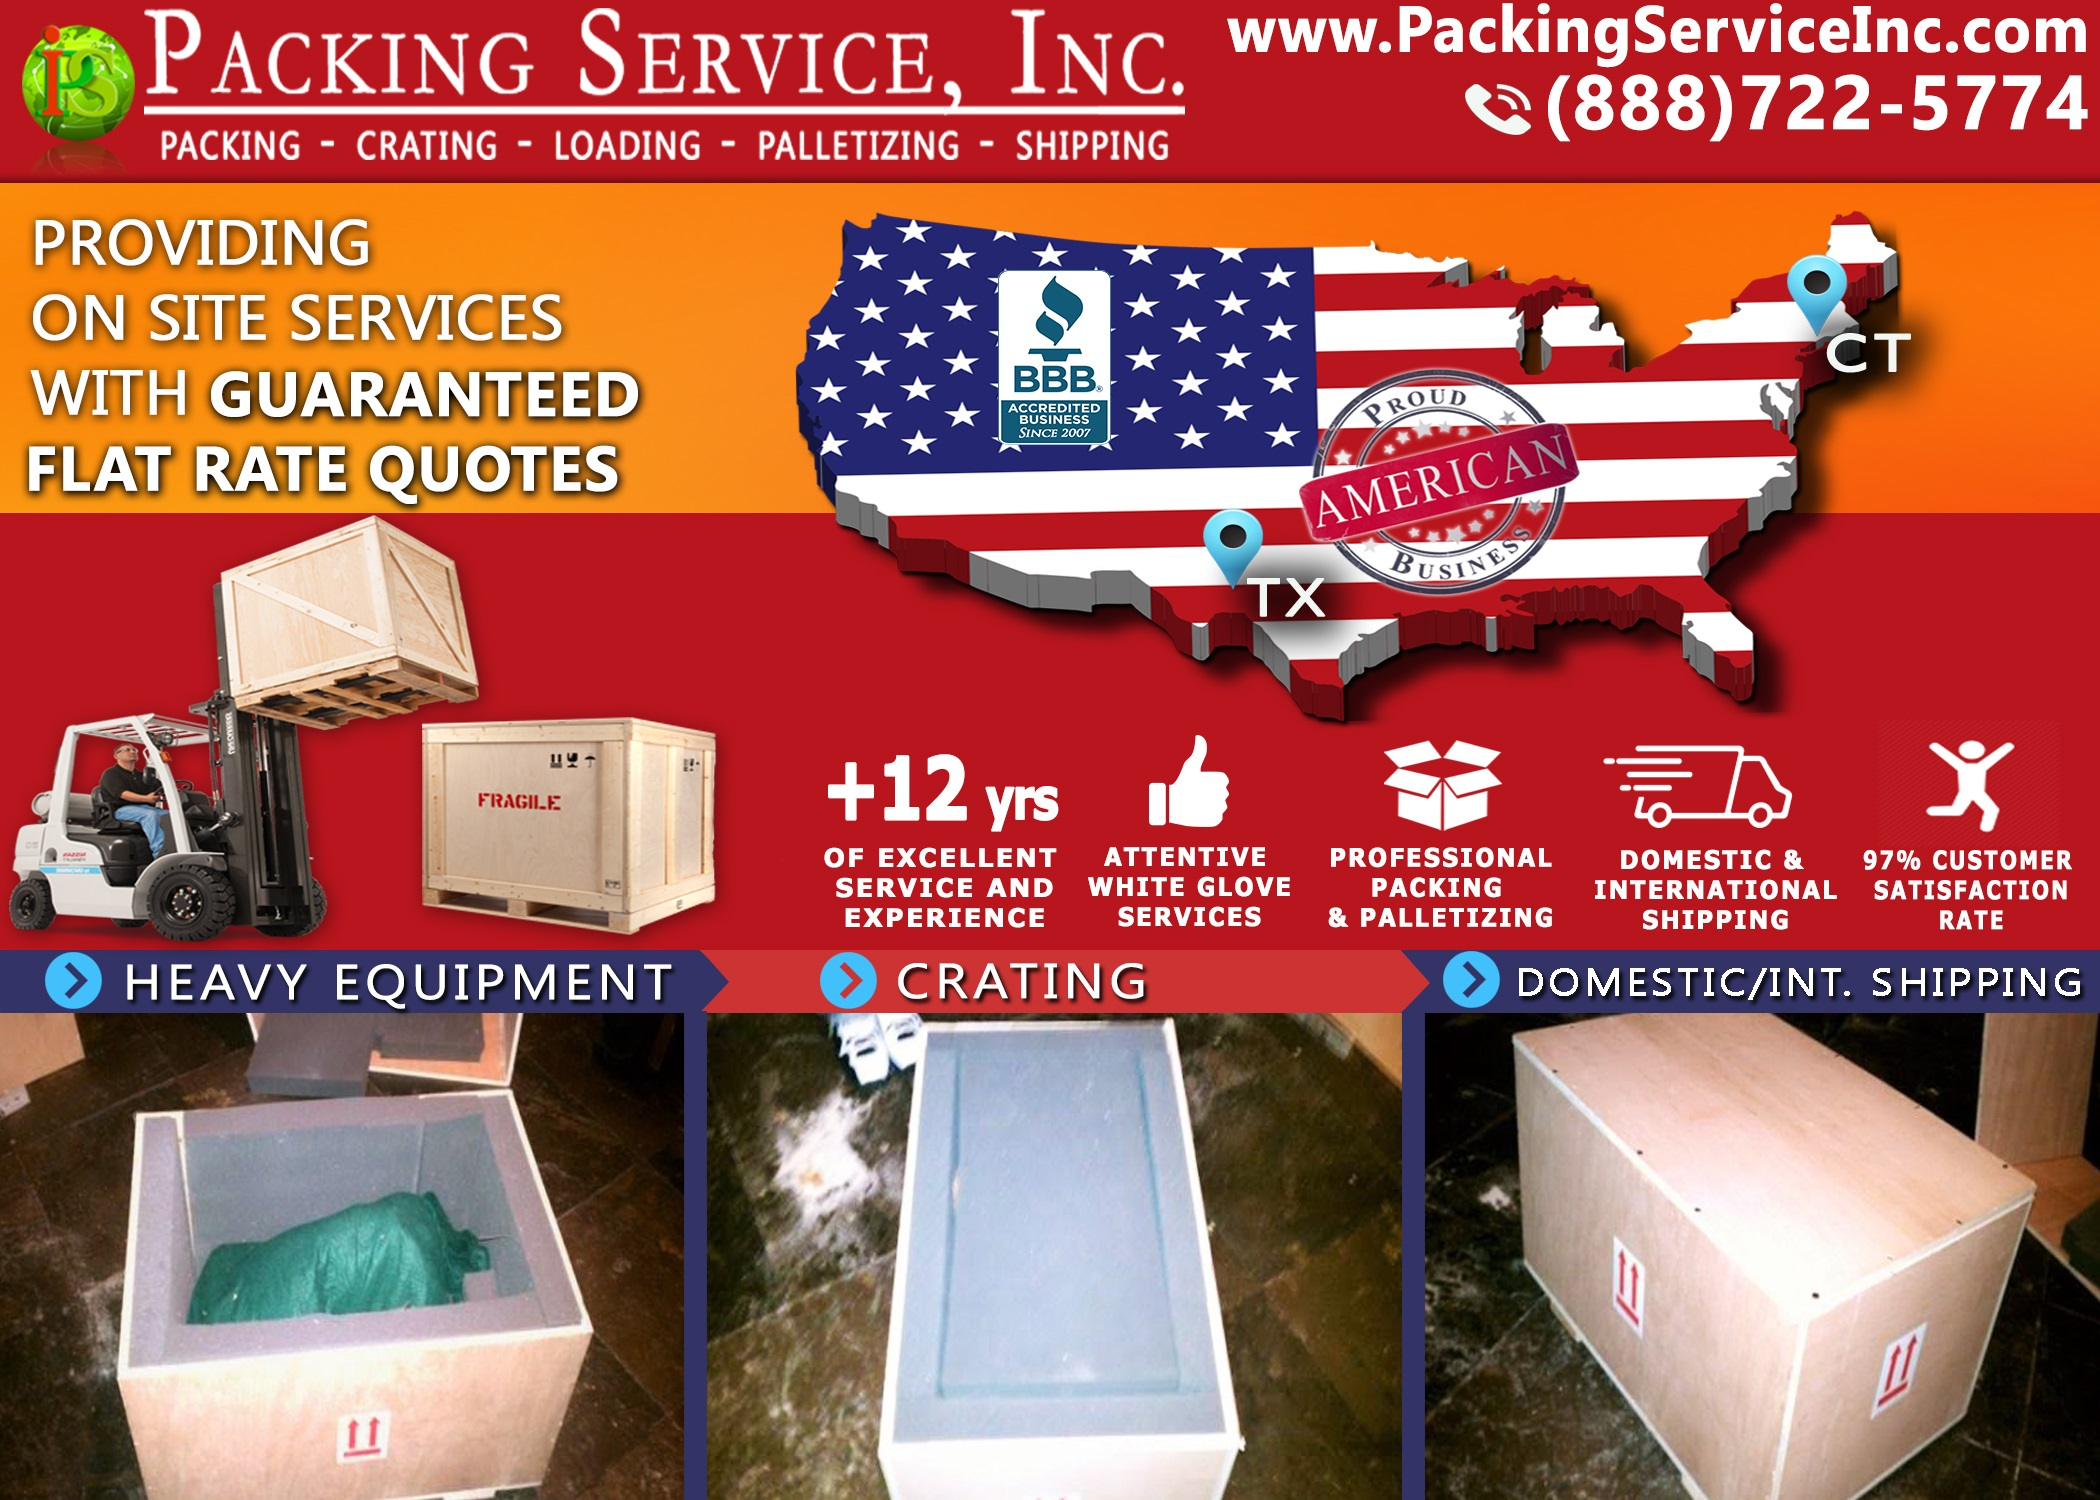 Custom Crating and Shipping from Connecticut to Texas with Packing Service, Inc. - 595